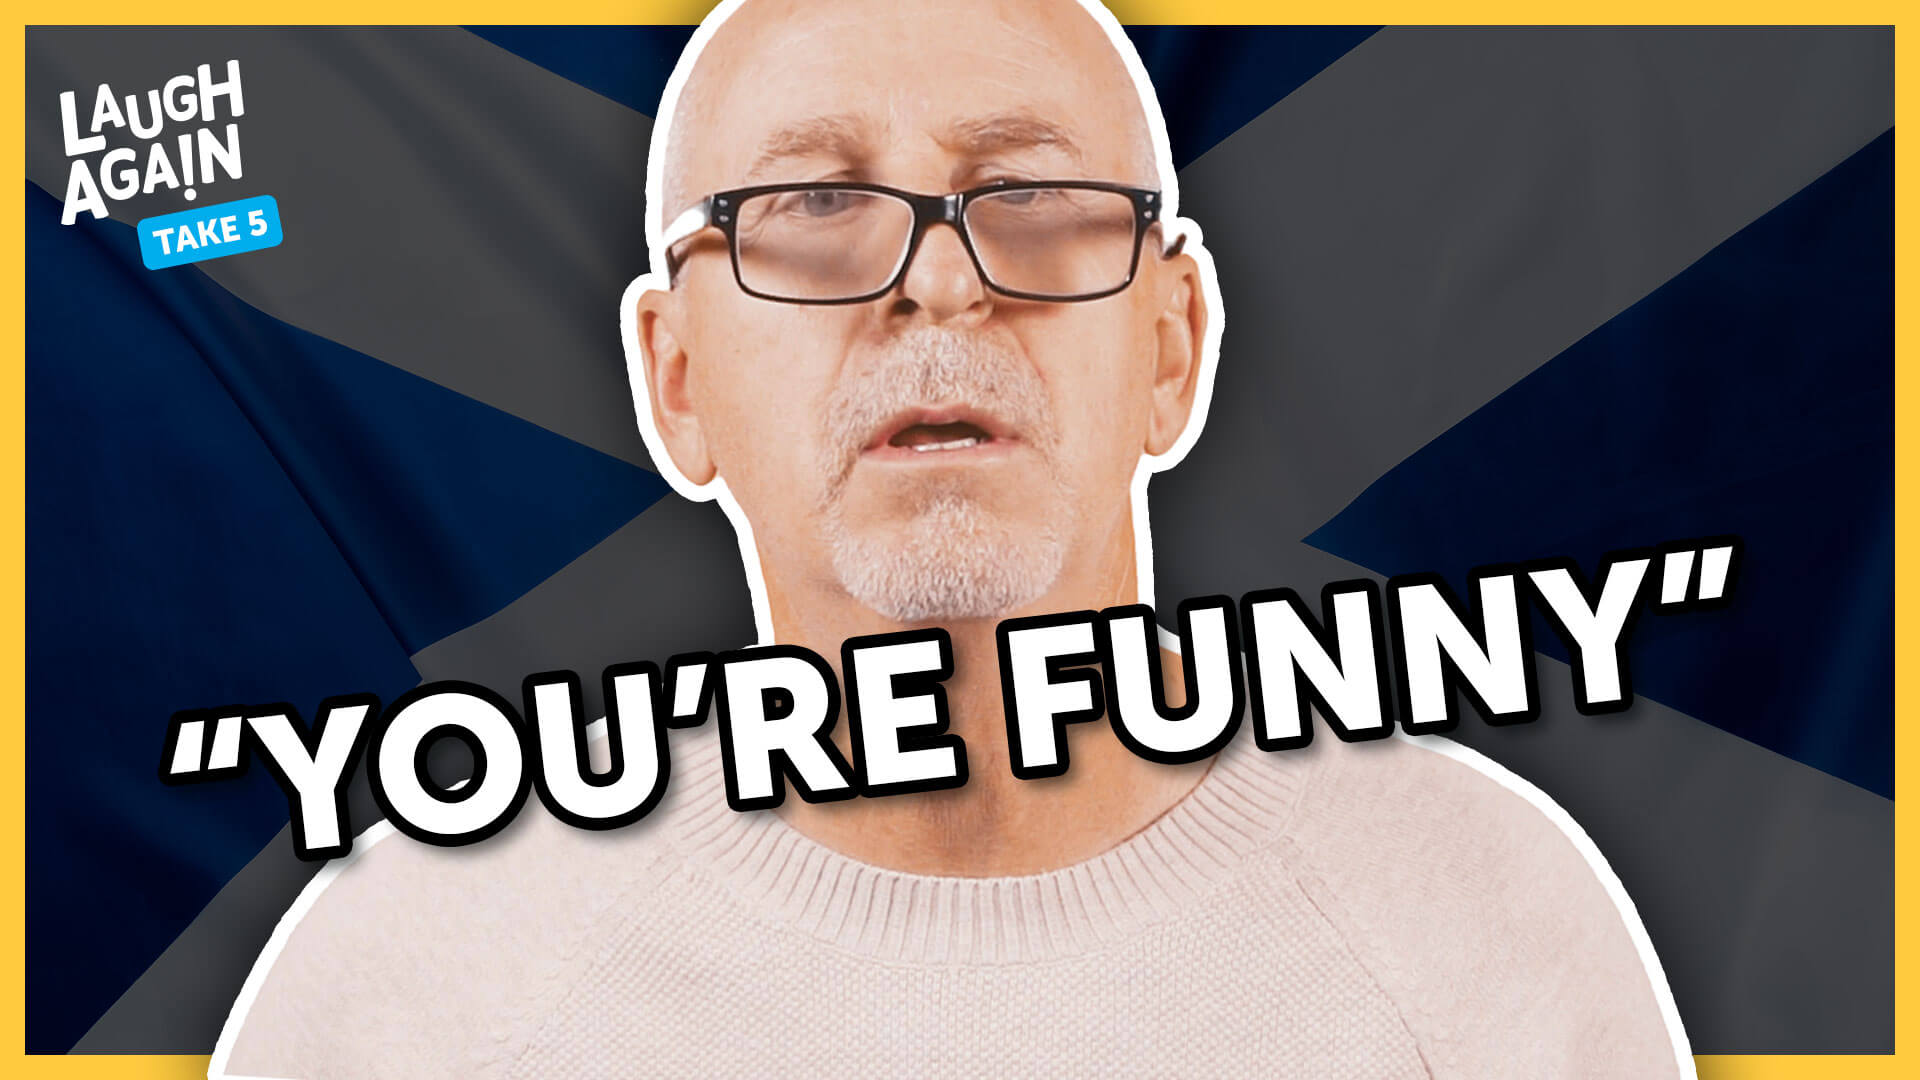 The Nicest Thing Ever Said | Laugh Again Take 5 with Phil Callaway